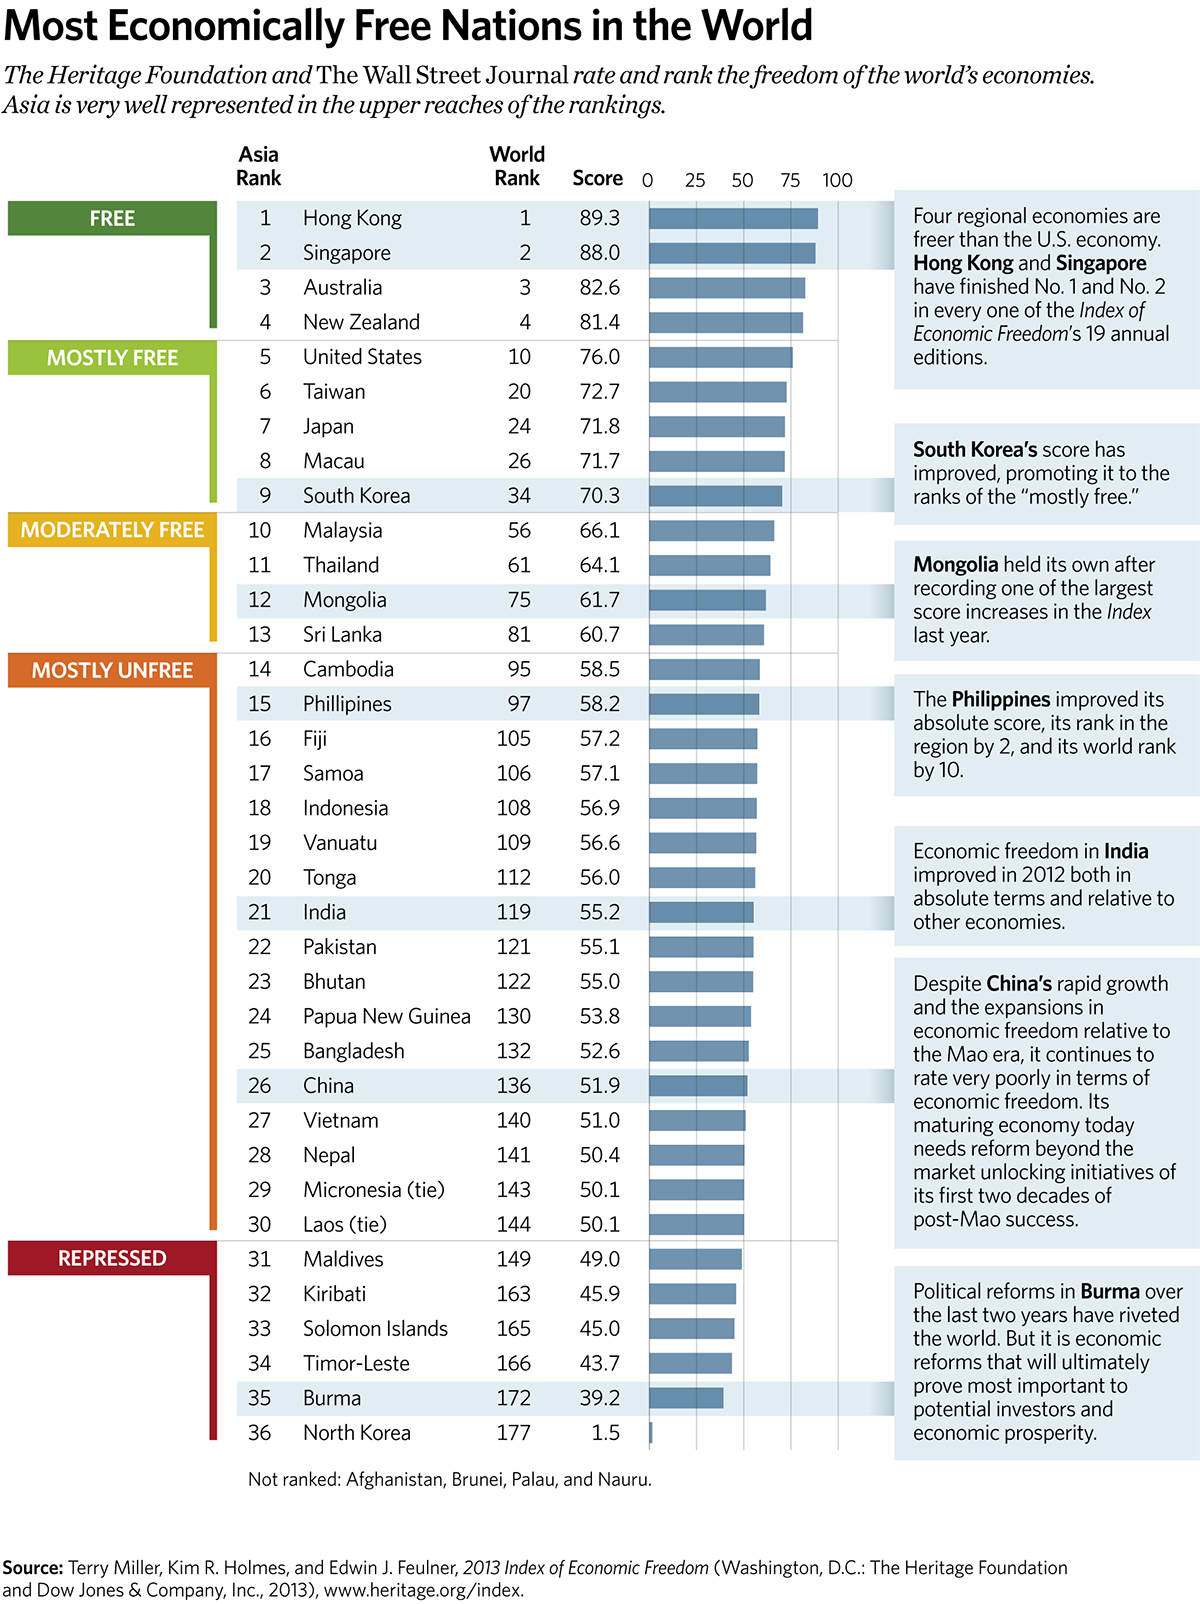 Most Economically Free Nations in the World